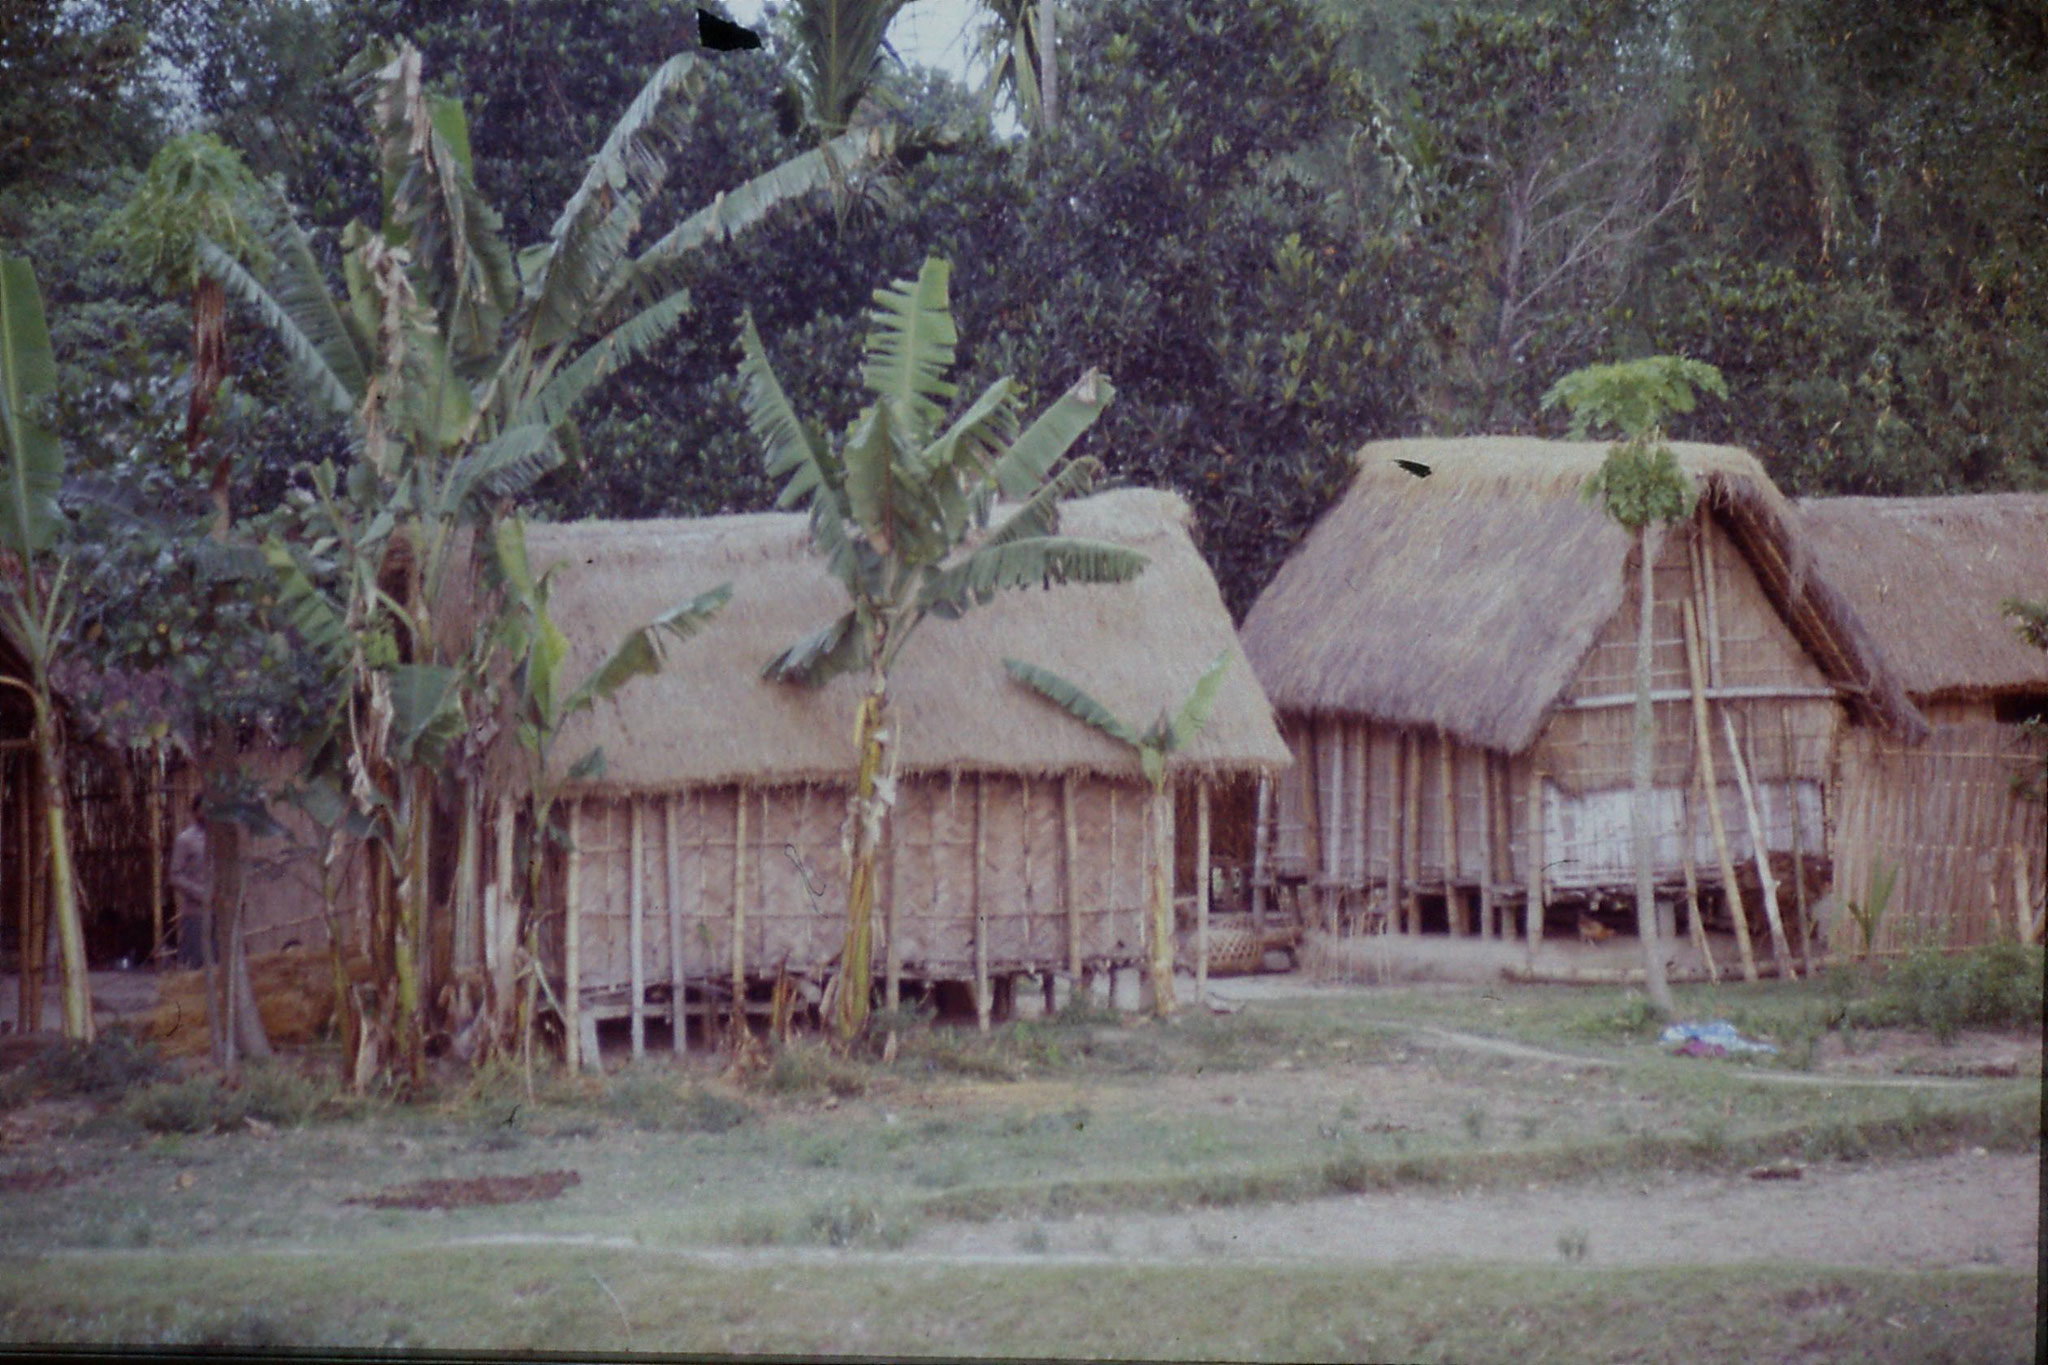 109/24: 7/4 West Bengal near border with Assam - huts on stilts